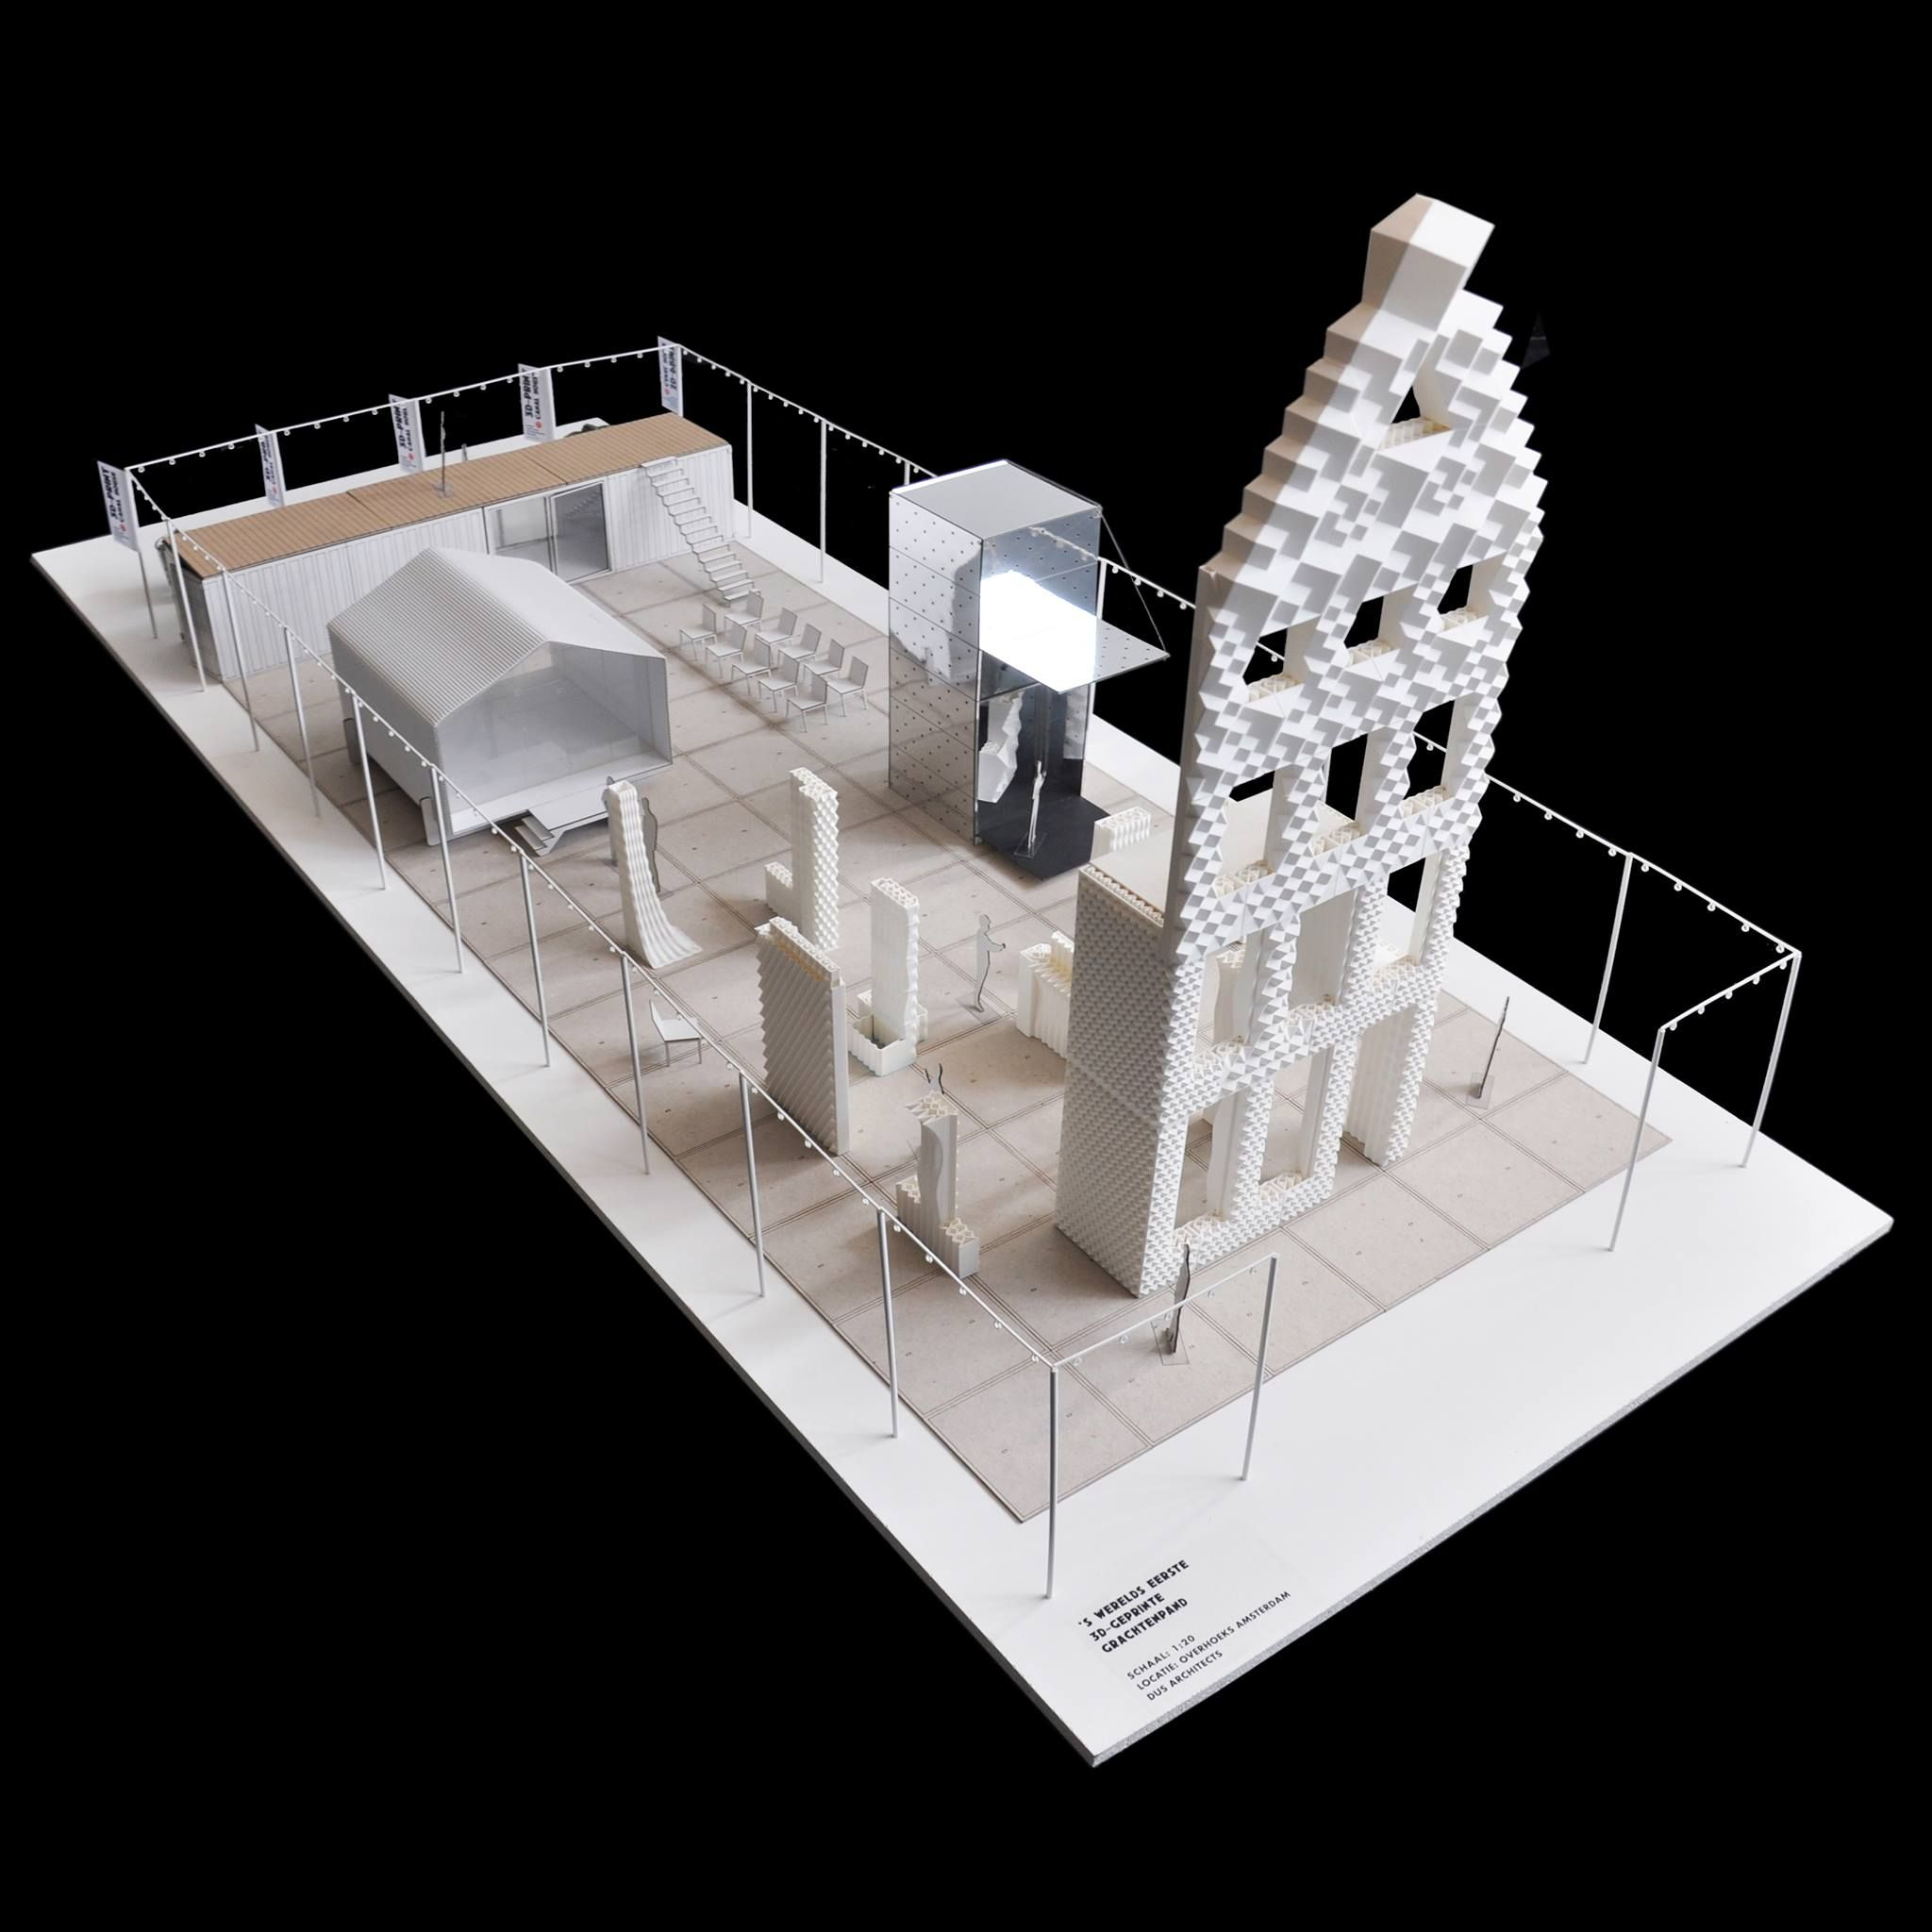 3D Printing 3D printing buildings a summary of additive